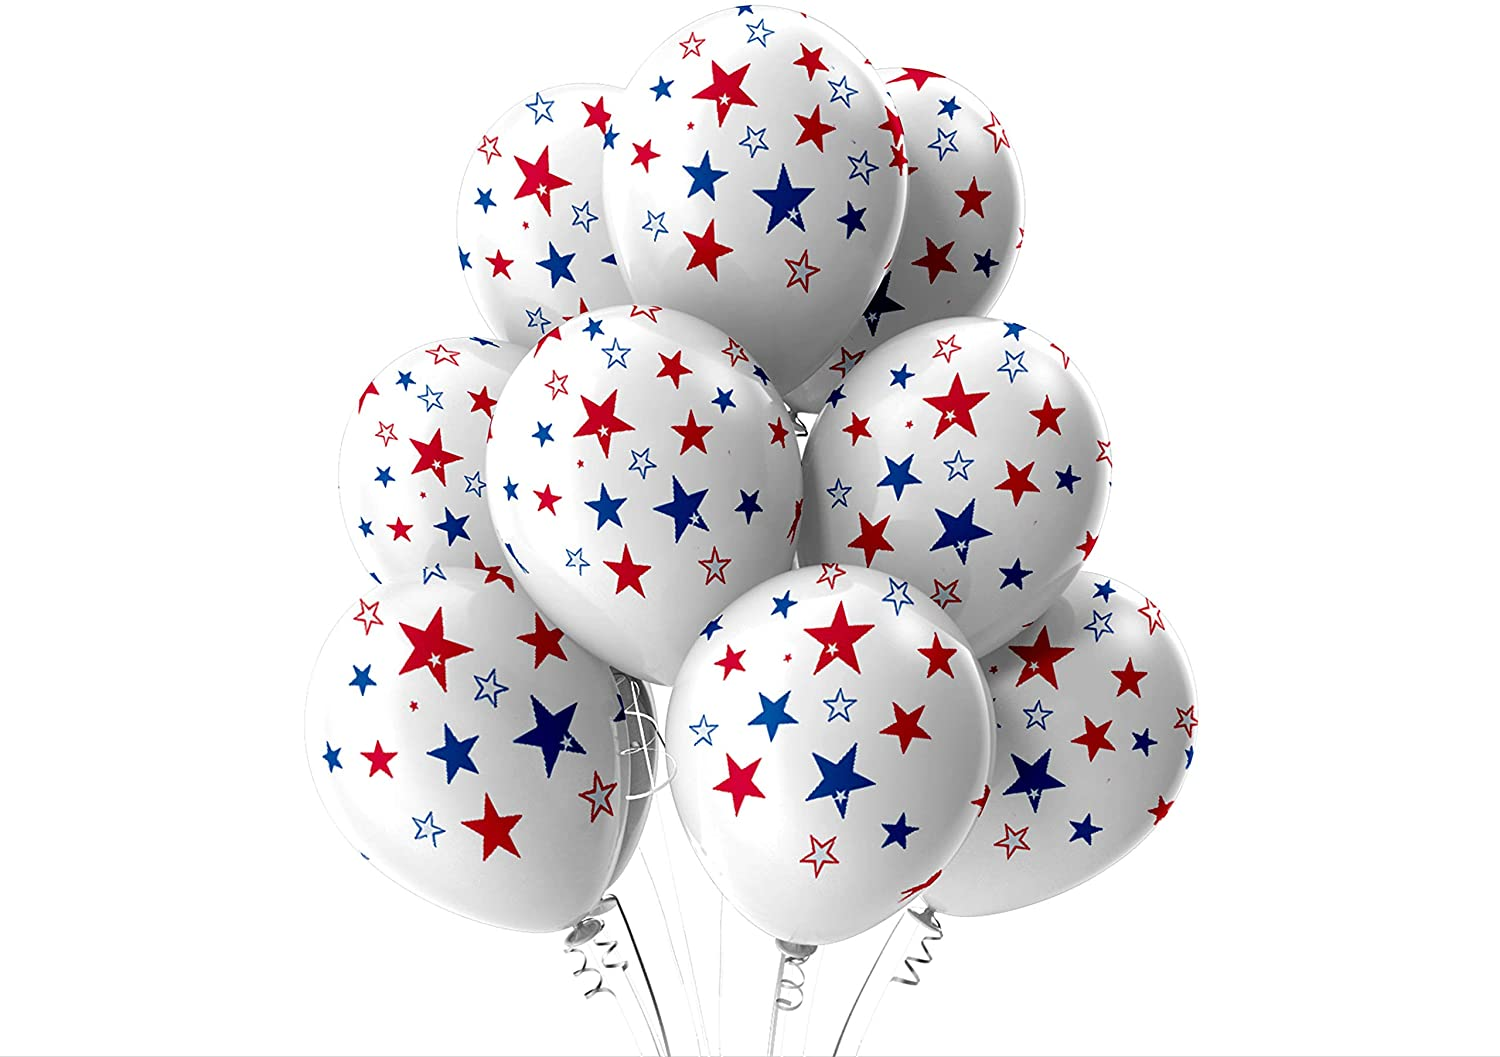 Large Latex Party Balloons Smiley Face Balloons, Star Balloons, Race Track Checker Balloon Packs, Heavy Duty, High Quality Commercial Grade (Stars)